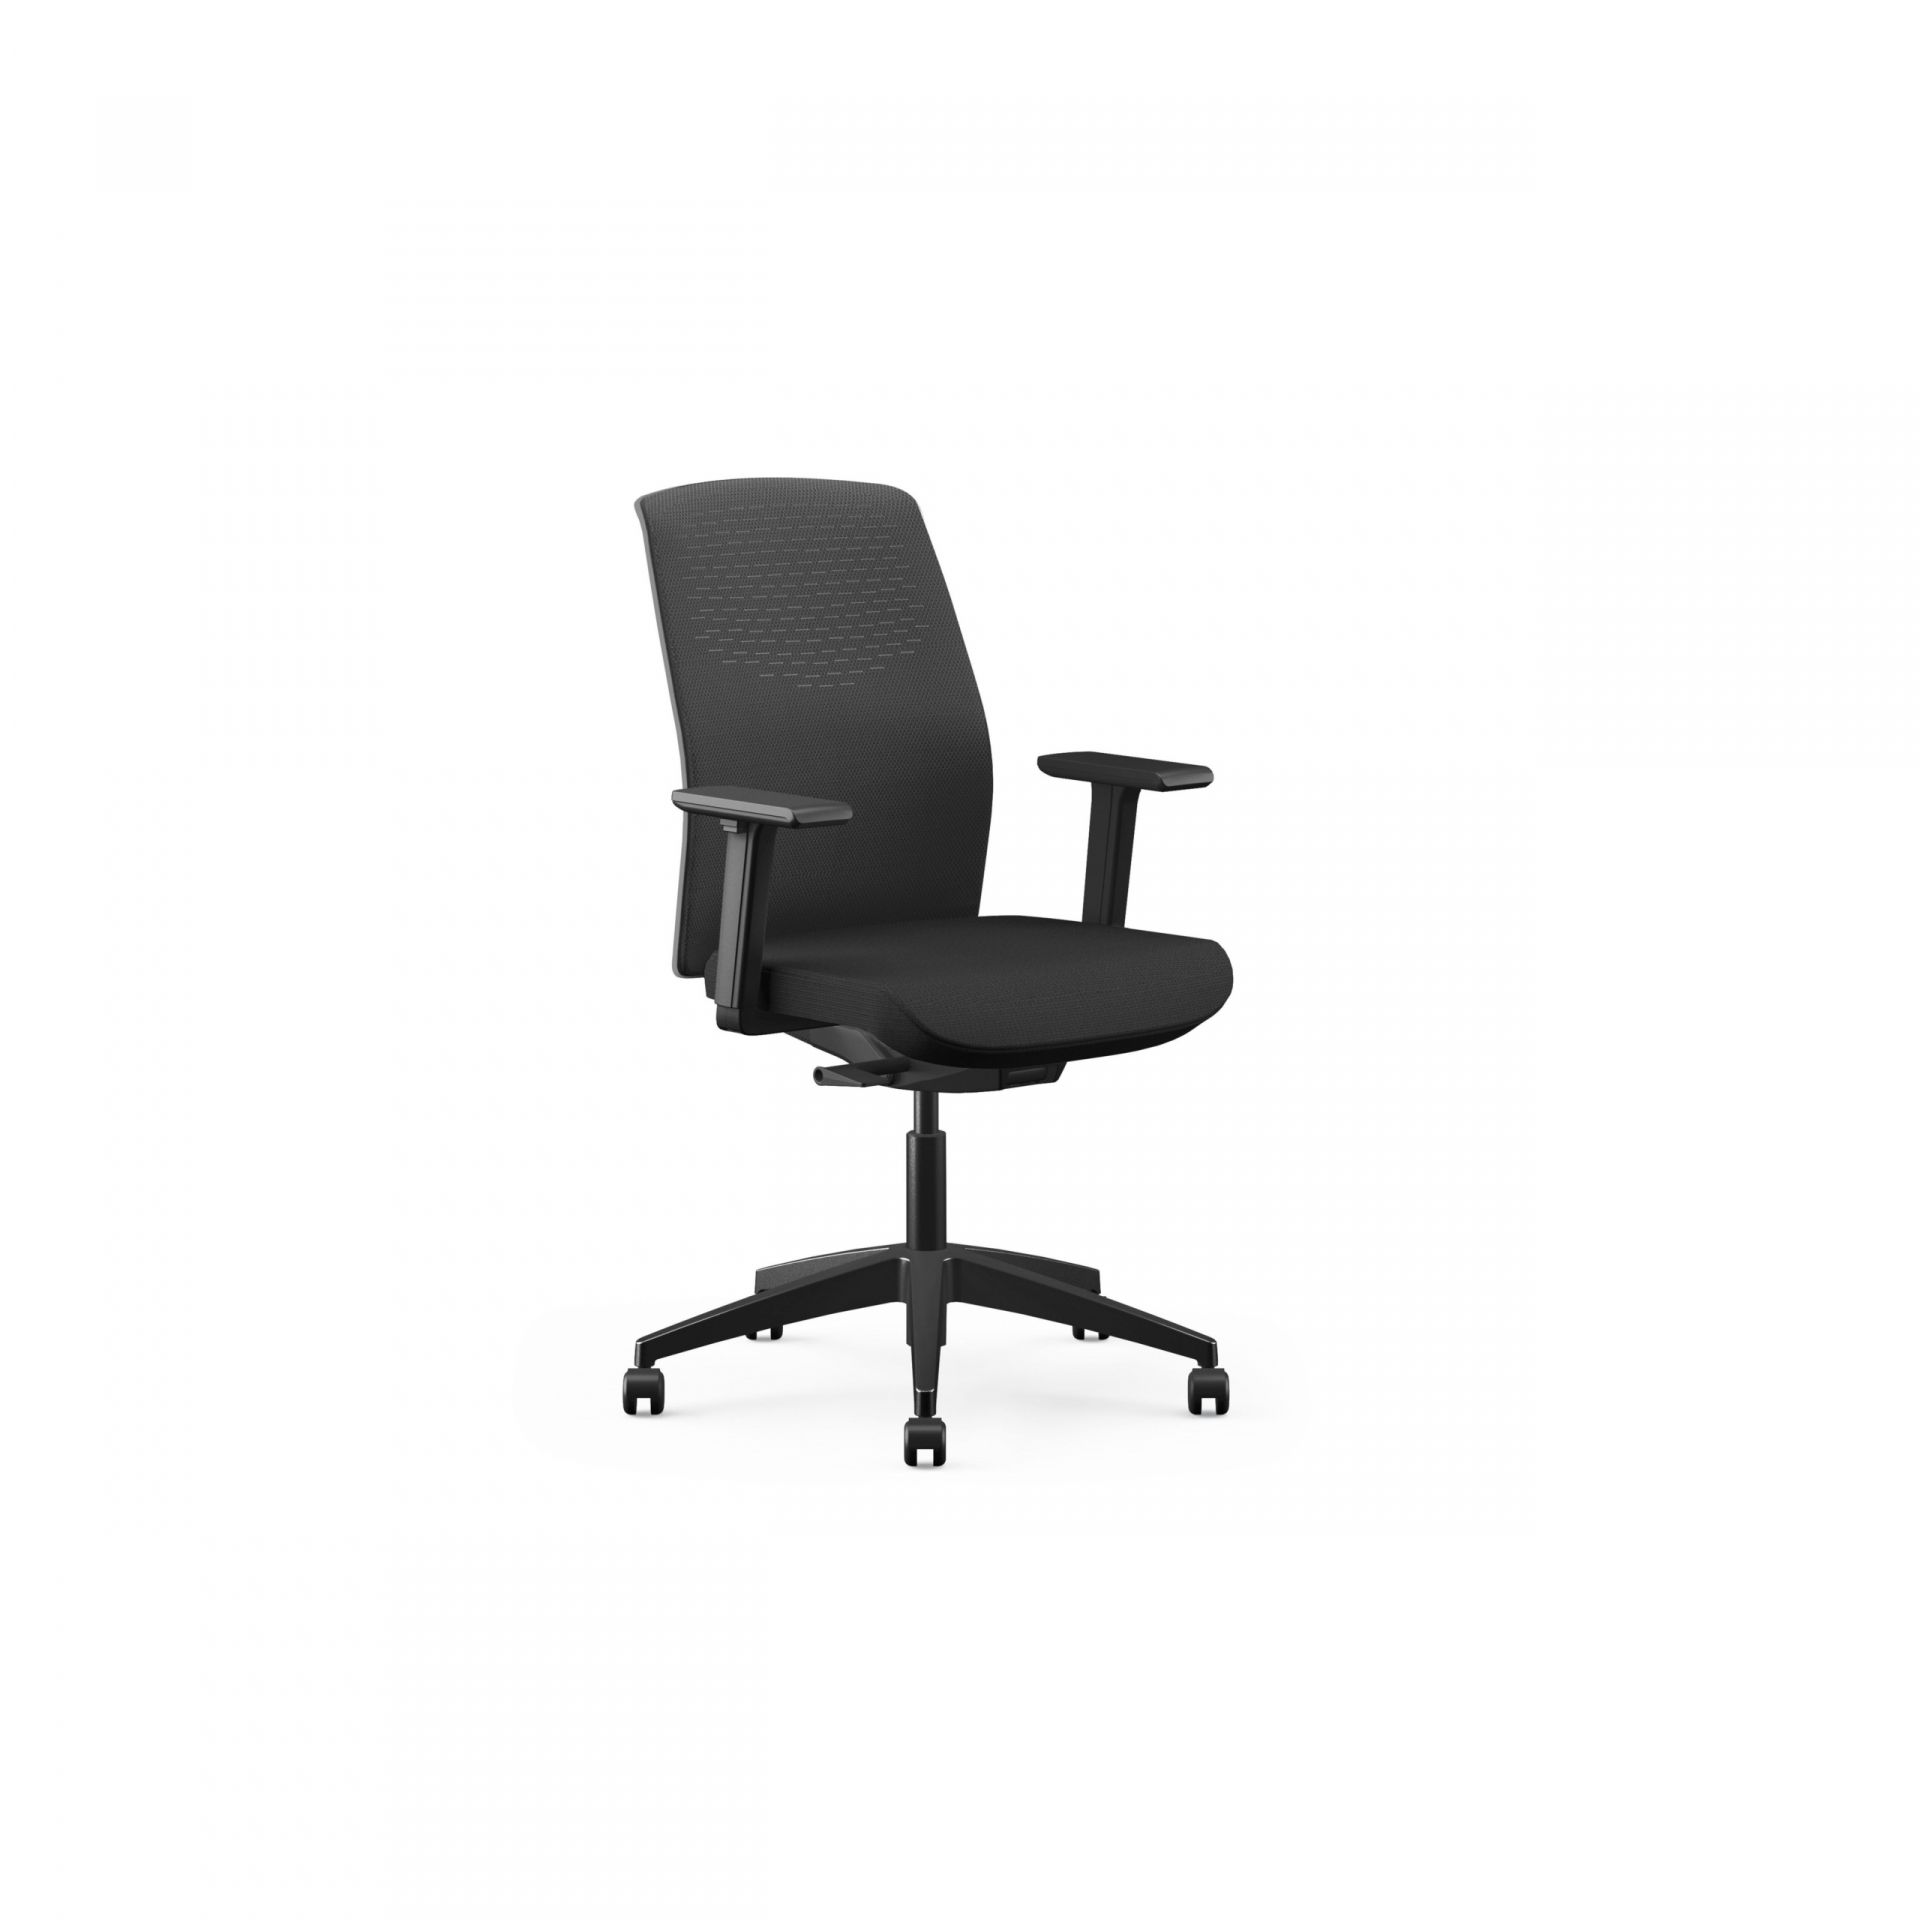 Yoyo Office chair with covered mesh back